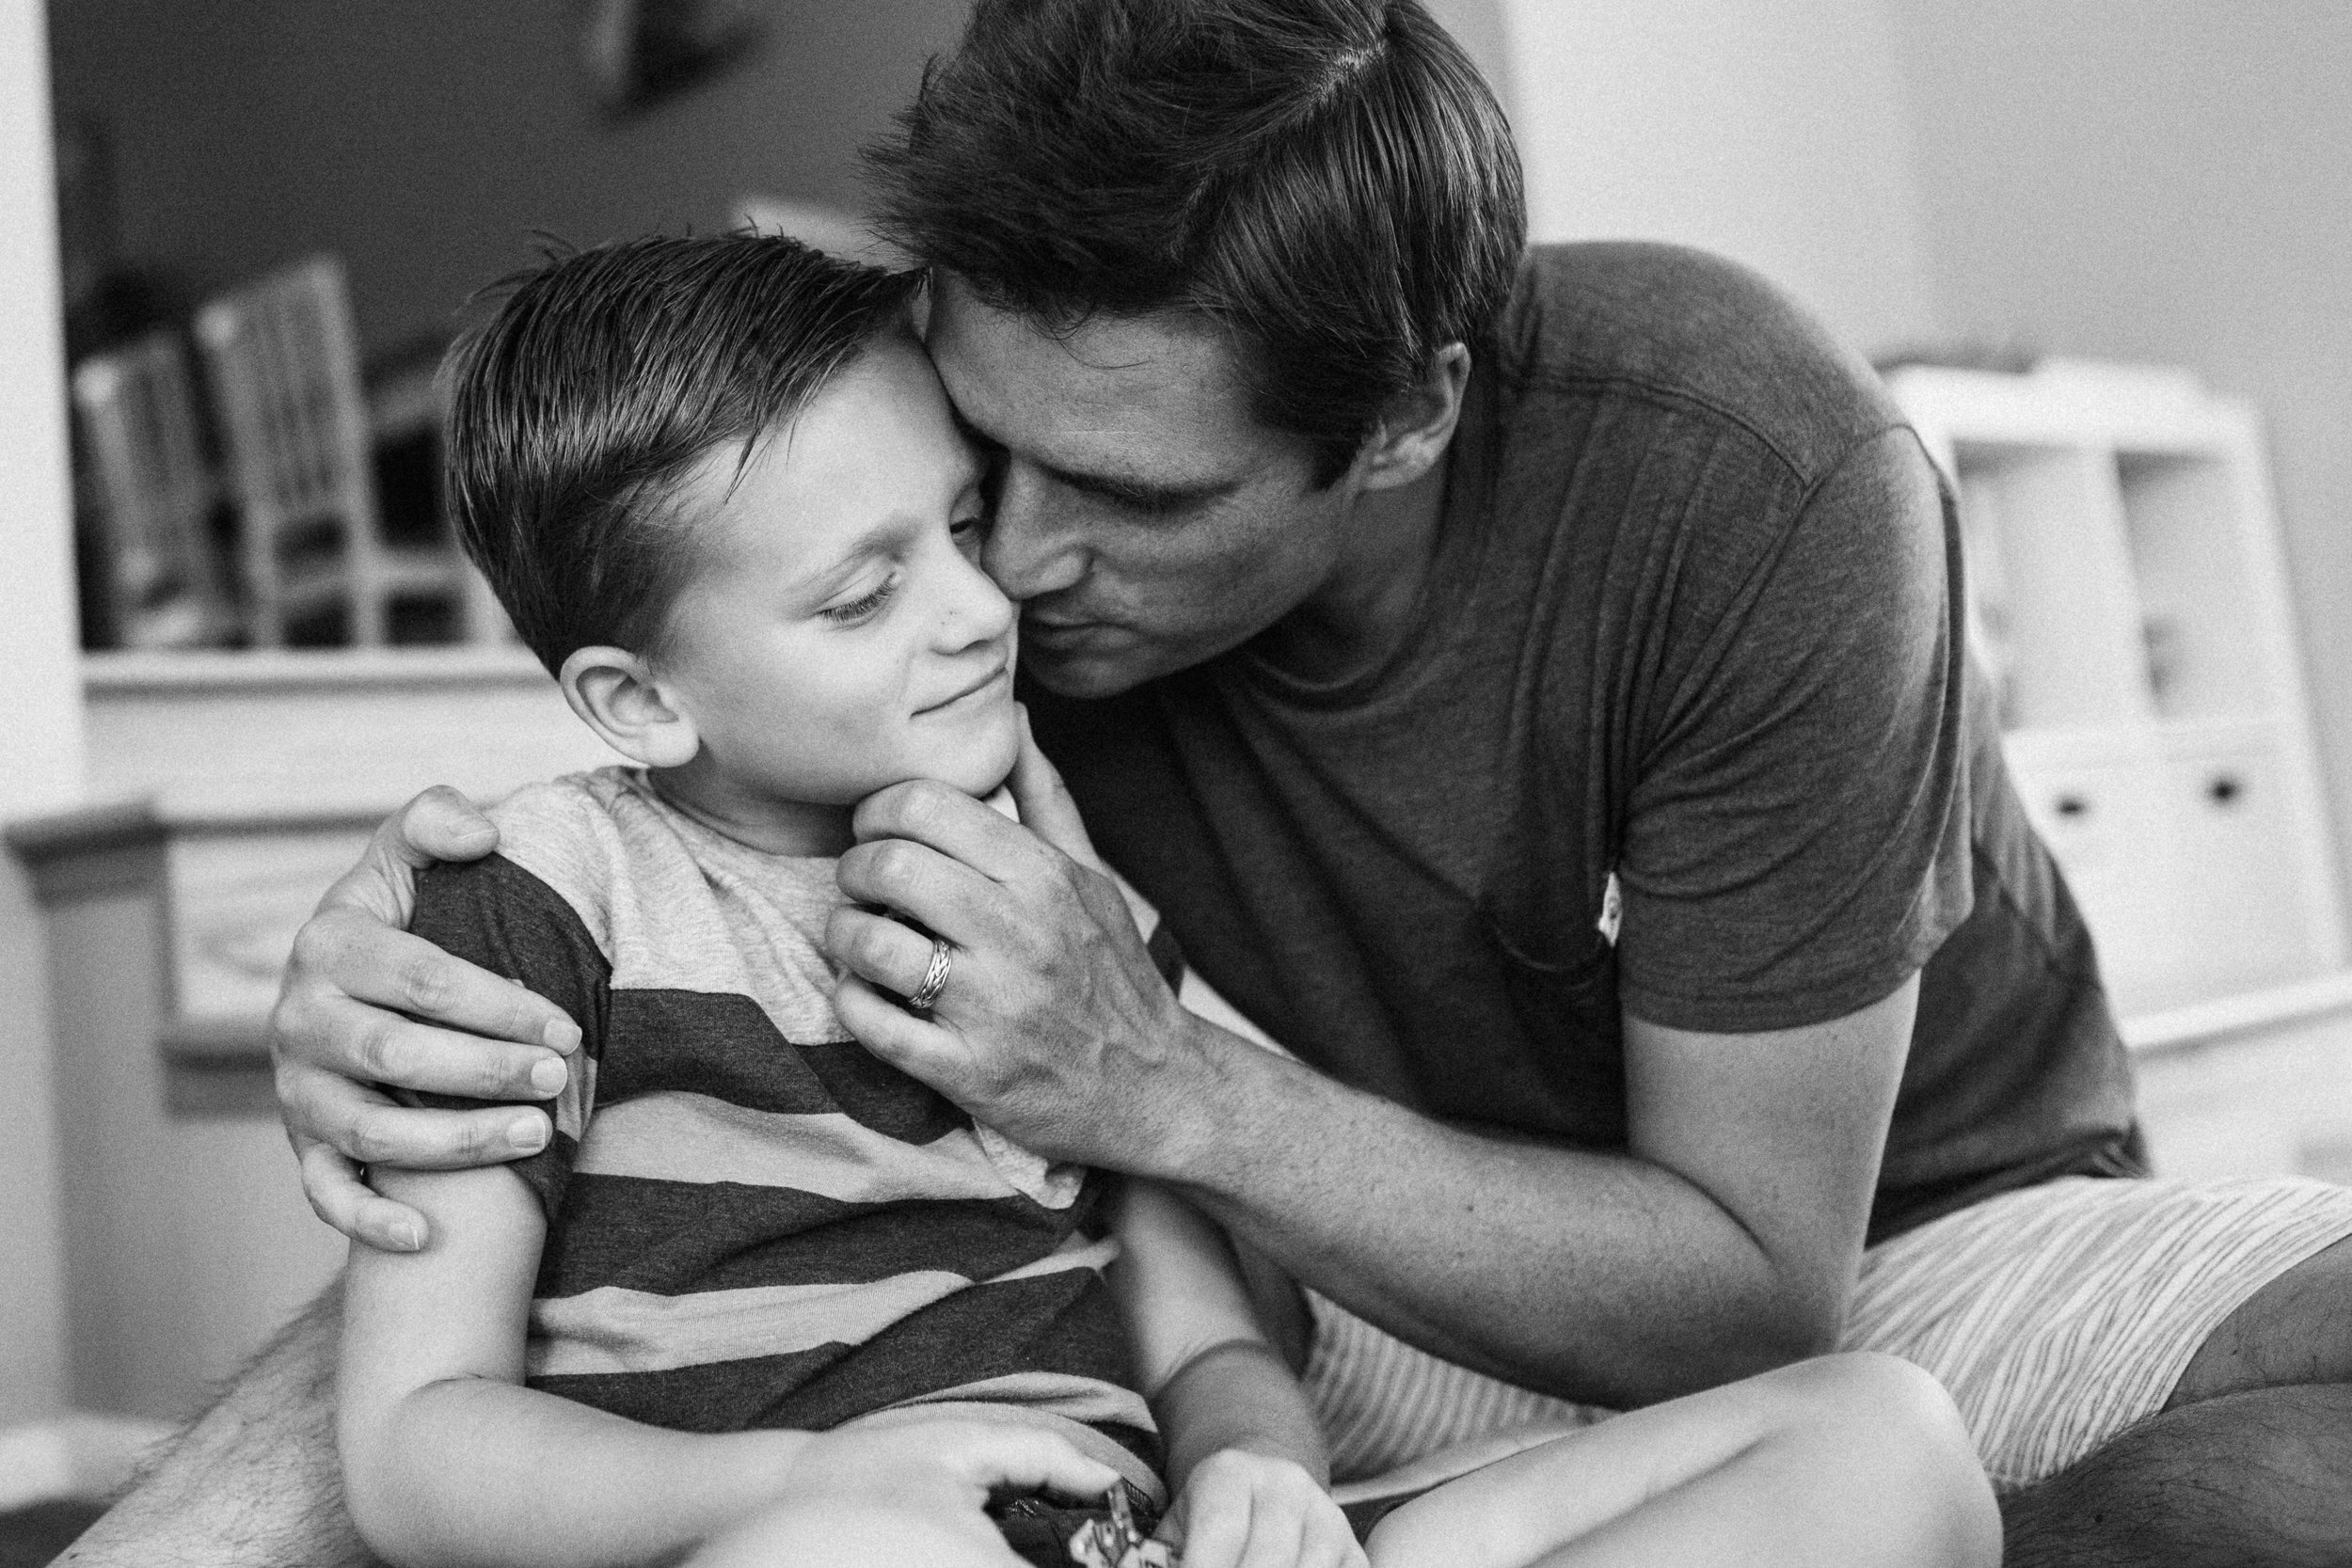 candid-black-and-white-intimate-loving-gesture-from-father-to-son-sugarhouse-utah